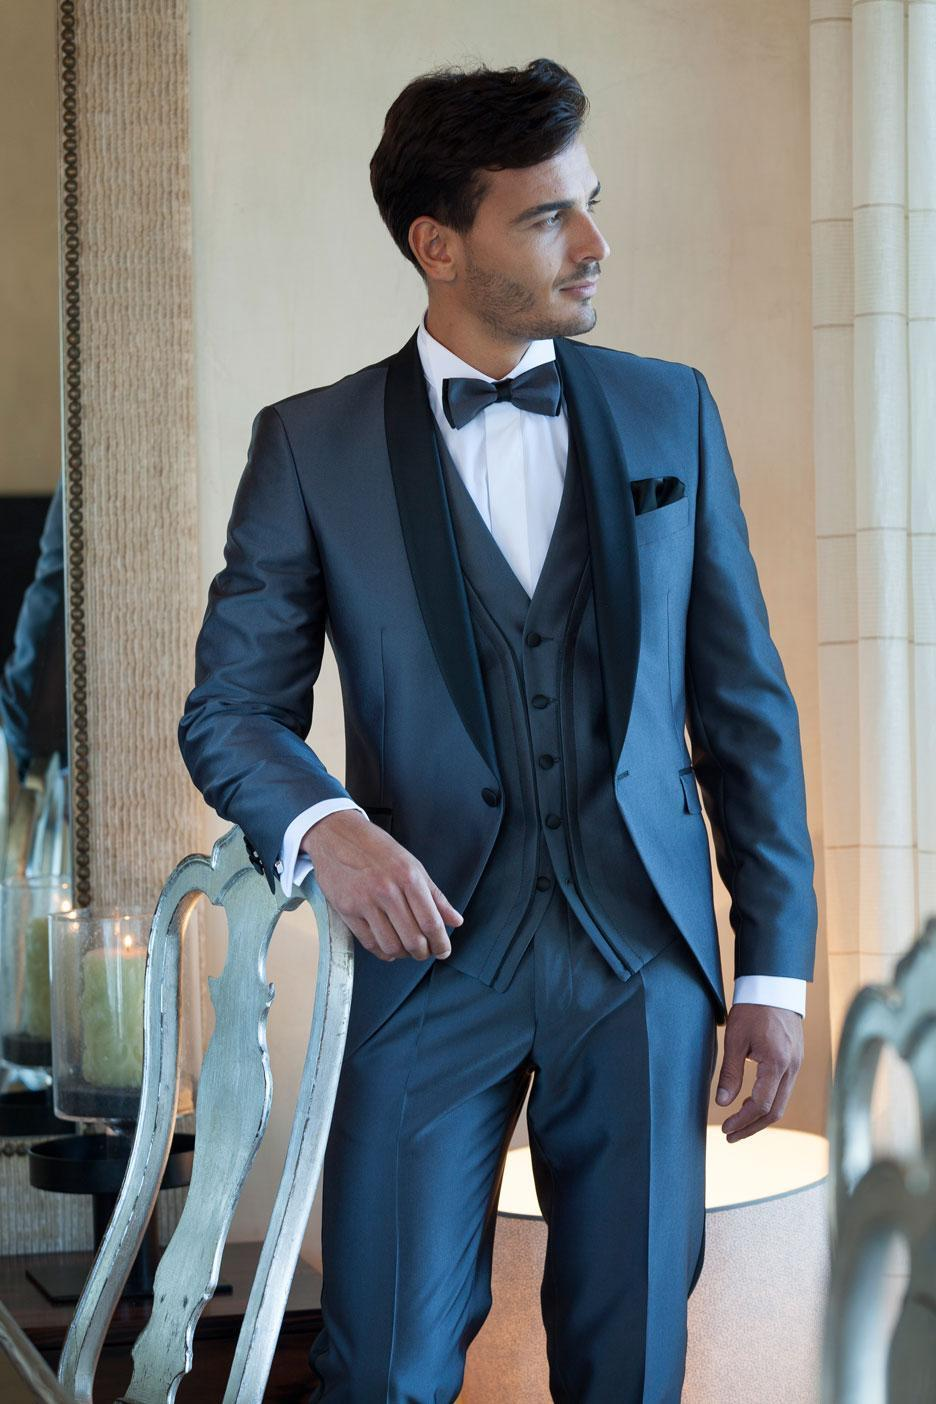 Suits For Wedding.Groom Wear Tuxedos Mens Wedding Suits Tuxedos For Men Tuxedos Tailcoat Groom Wear For Weddings Events Black And White Suit For Men Black Mens